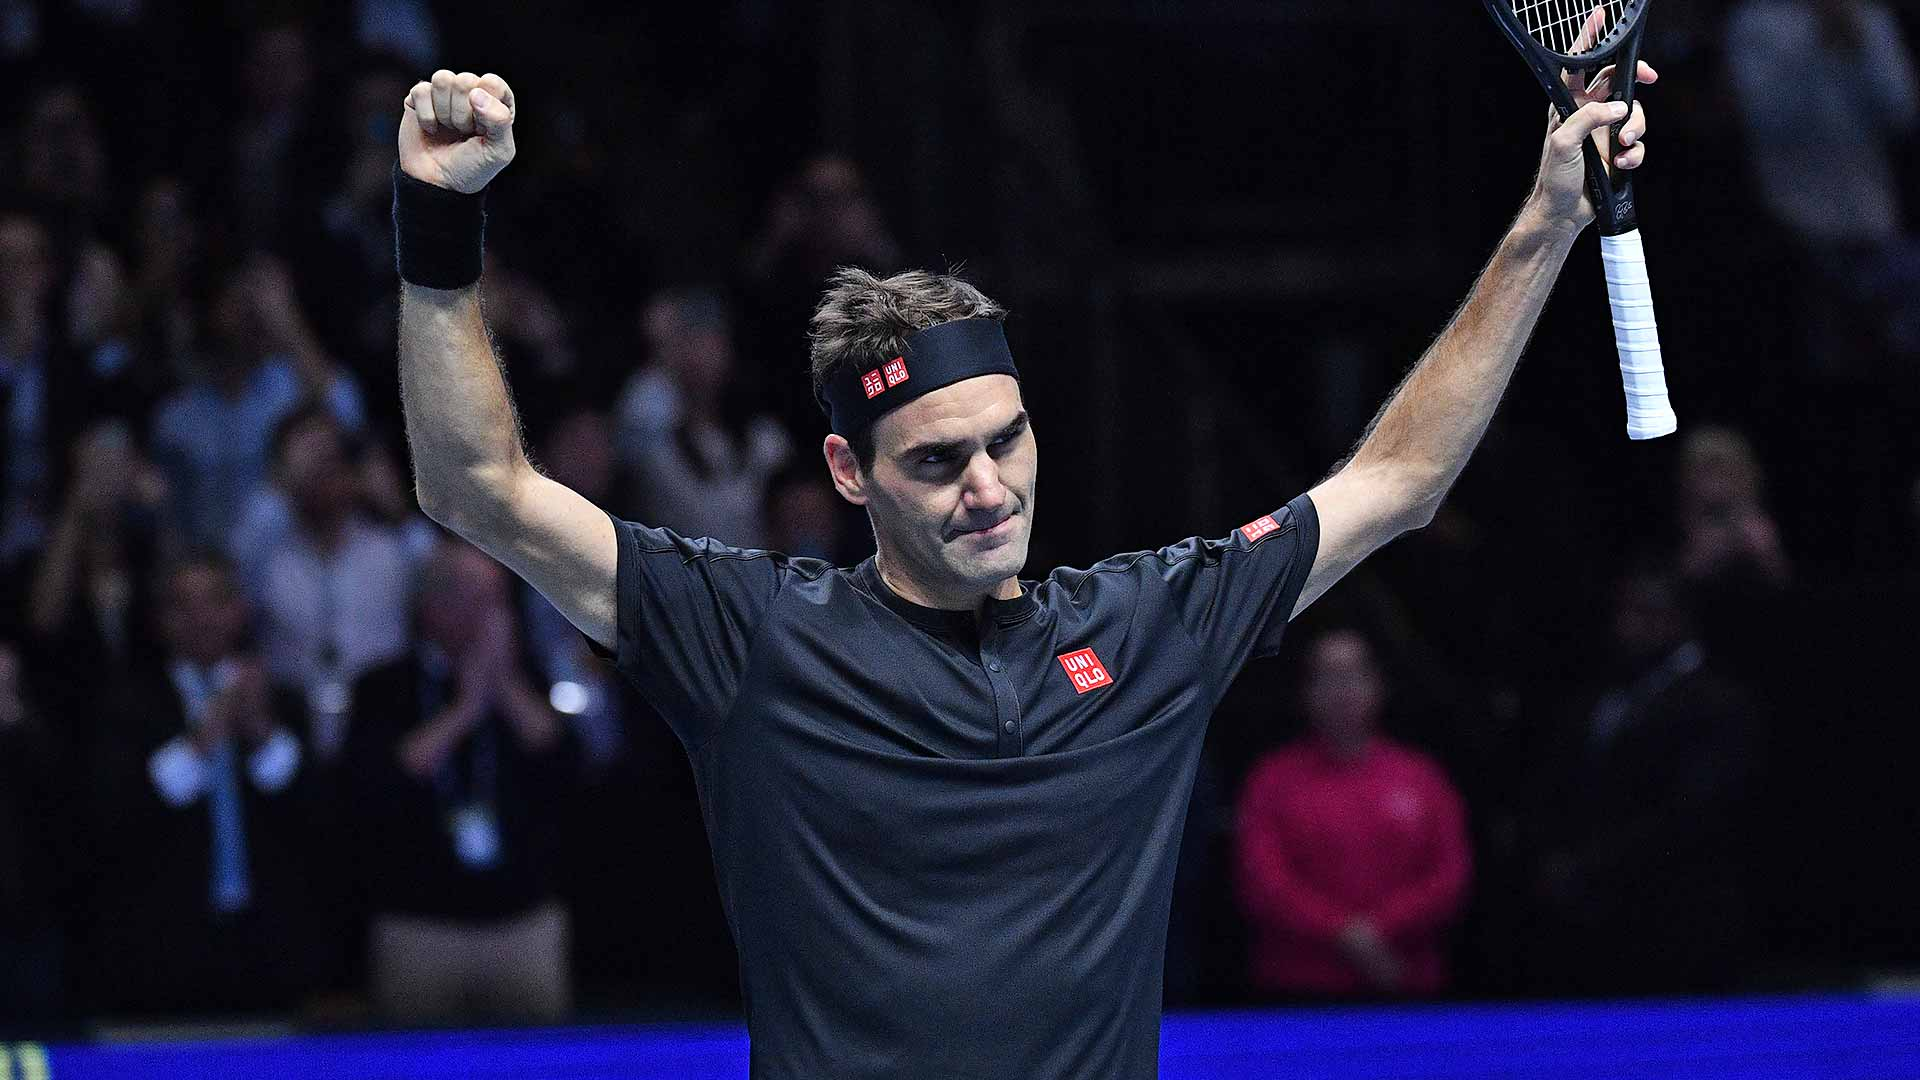 <a href='https://www.atptour.com/en/players/roger-federer/f324/overview'>Roger Federer</a> beats <a href='https://www.atptour.com/en/players/novak-djokovic/d643/overview'>Novak Djokovic</a> for the first time since the 2015 Nitto ATP FInals on Thursday night.